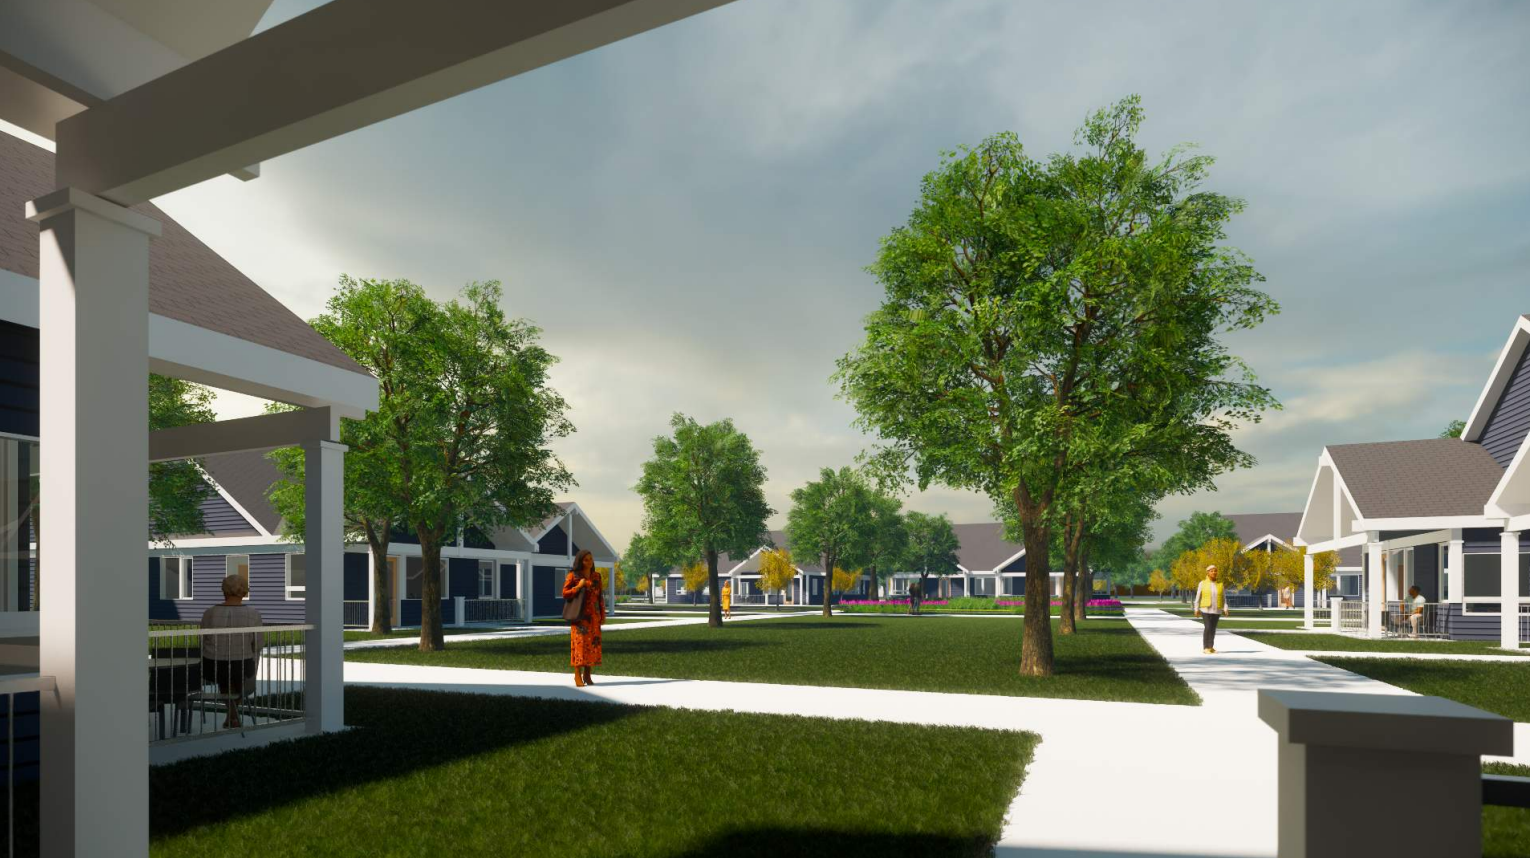 Pittsburgh Housing Authority Commits Gap Financing Funding to Cedarwood Homes Redevelopment Project